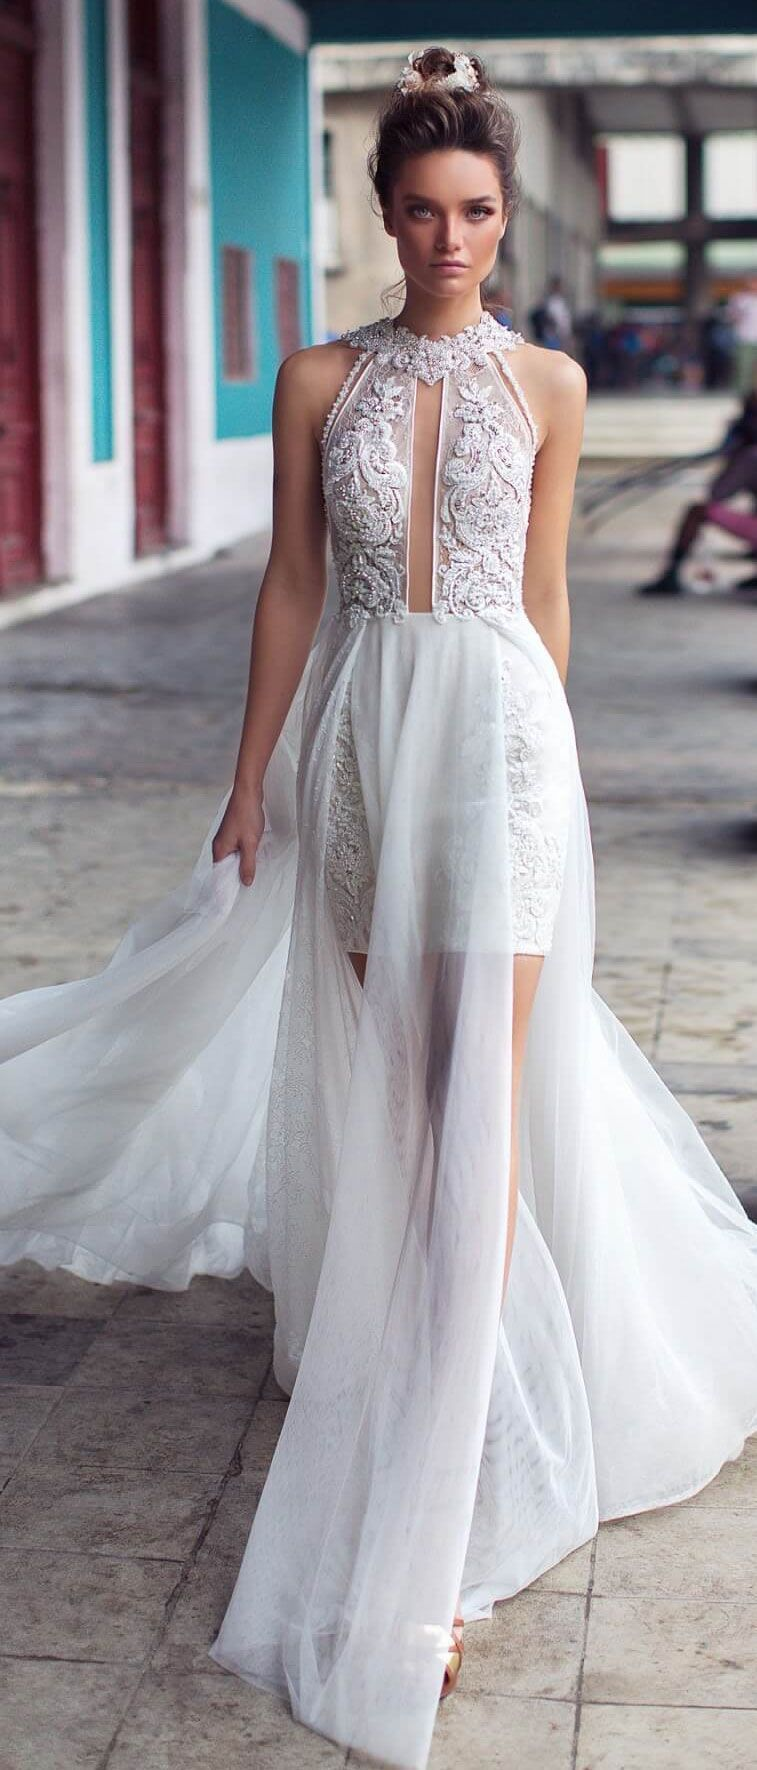 Embroidered and beaded lace float over the bodice and skirt while a